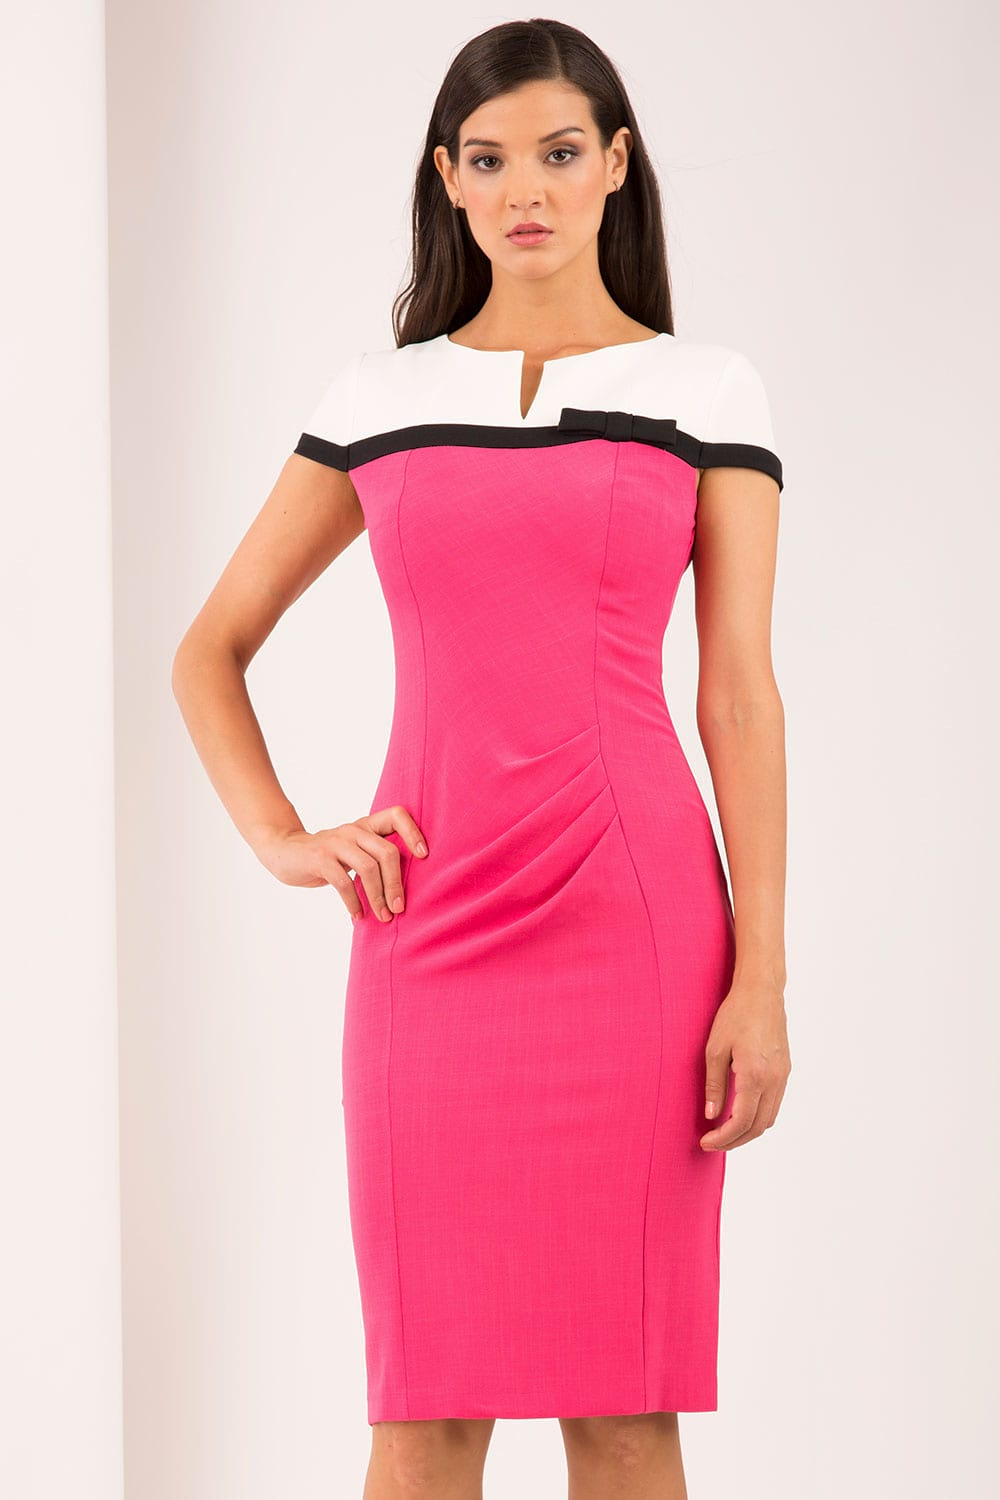 Hybrid Fashion 1278 Hudson Pencil Dress